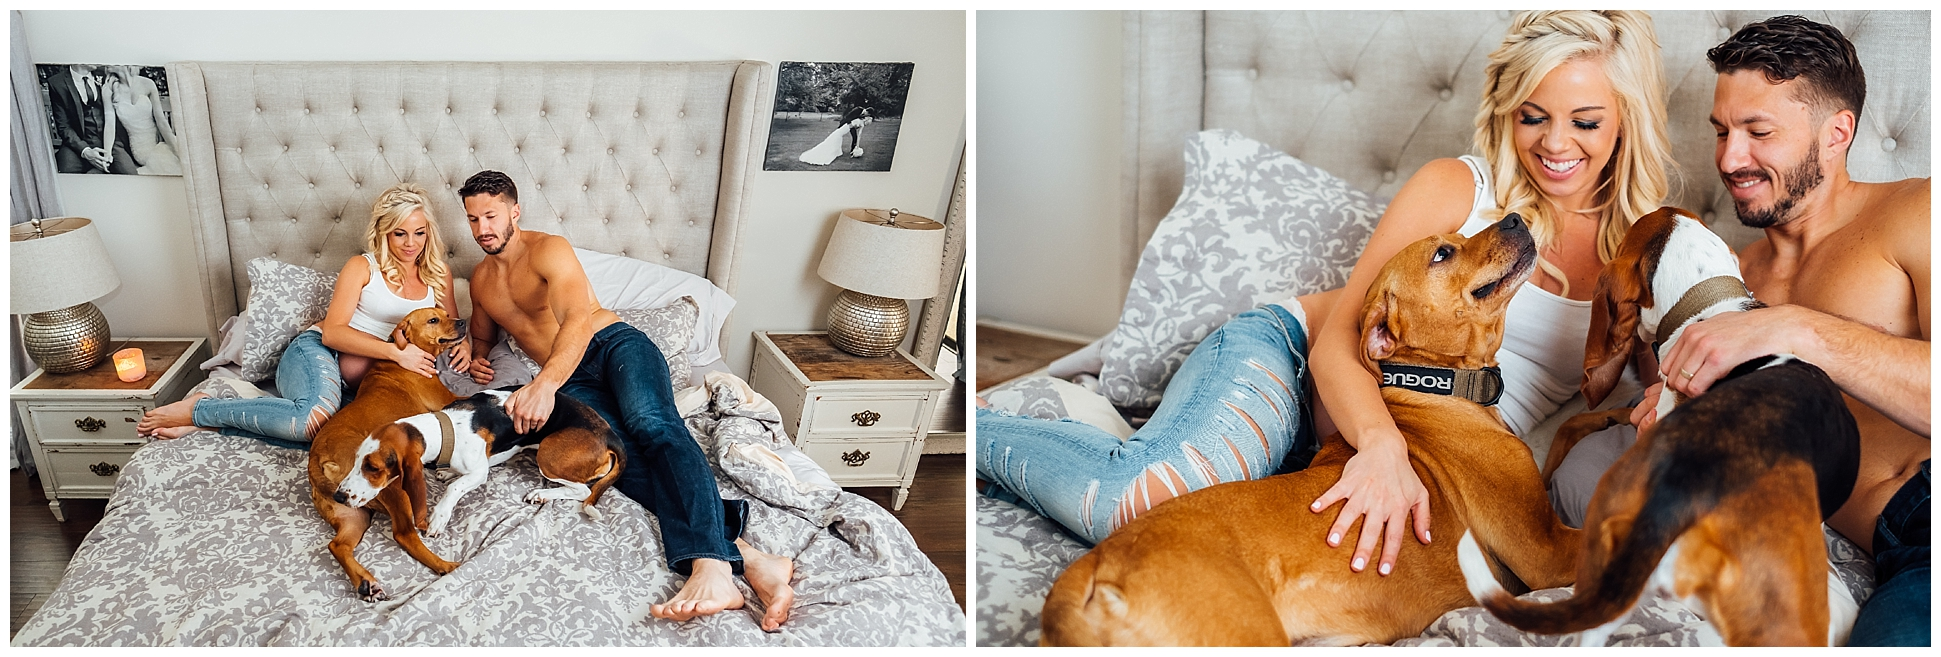 tampa-playful-at home-maternity-boudoir-dogs_0051.jpg